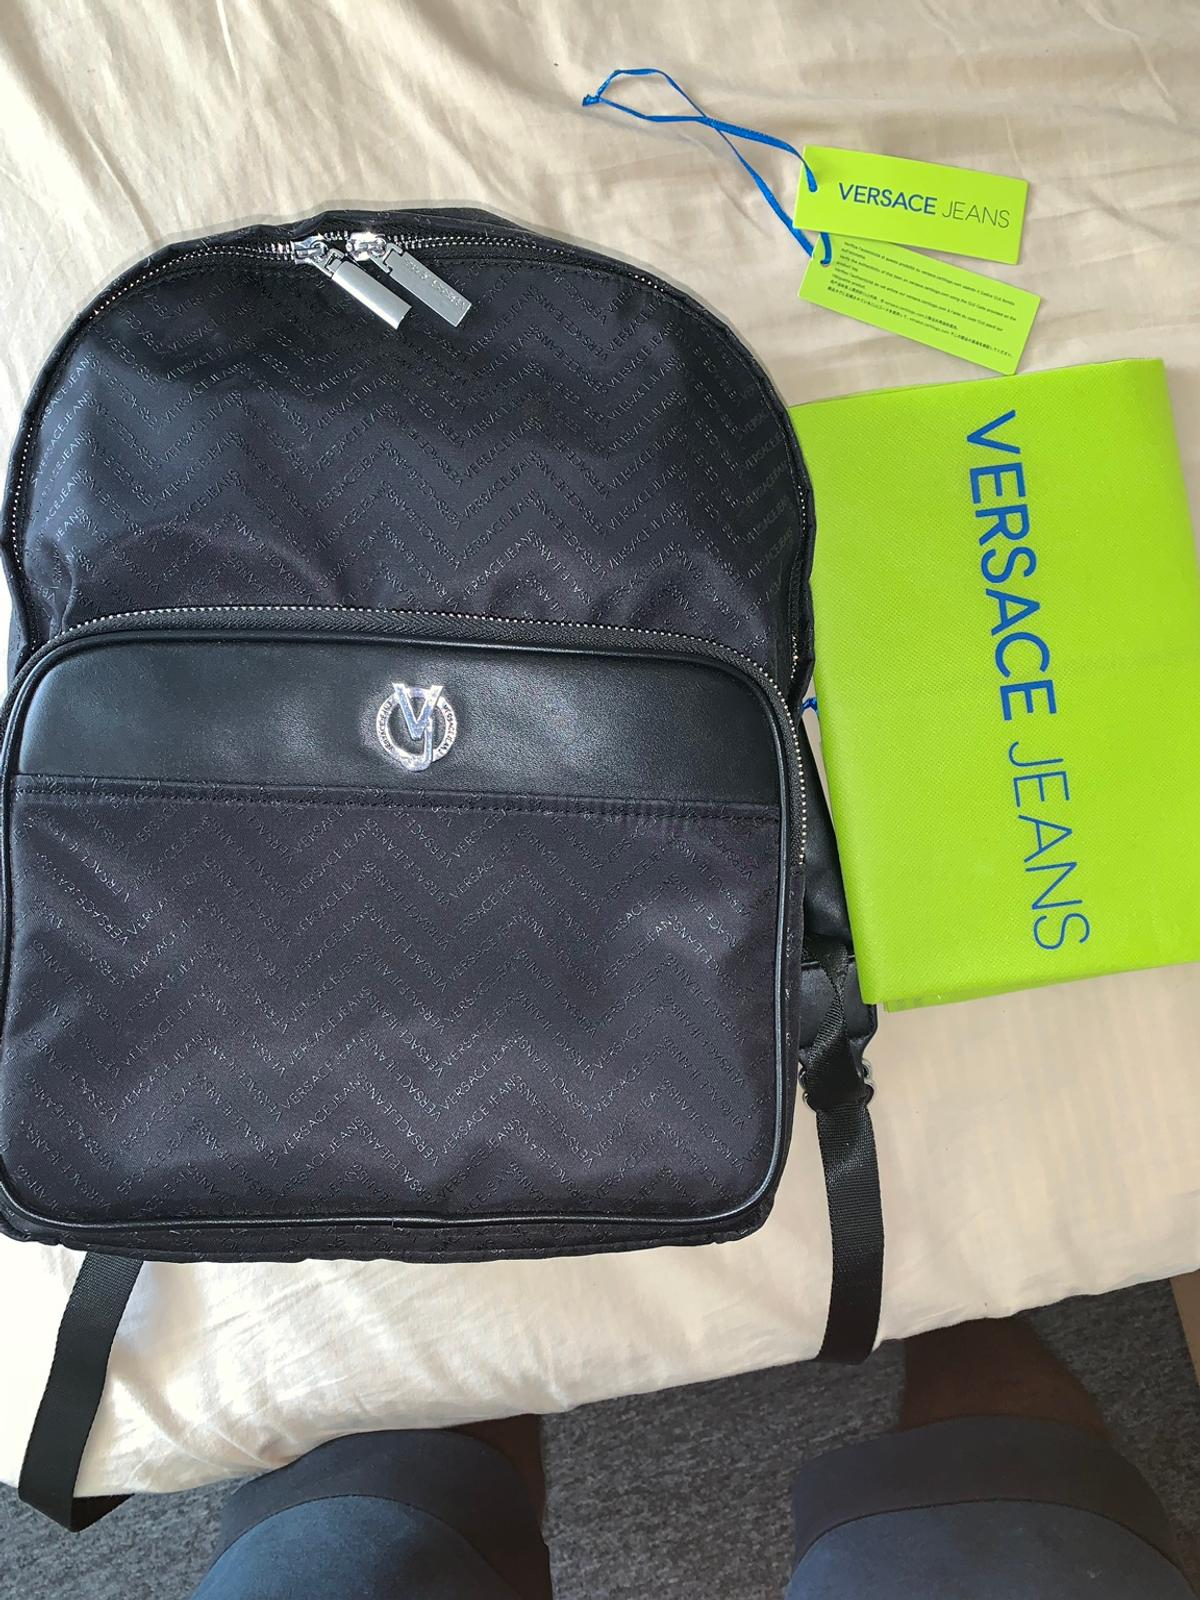 26204d4882 Versace jeans Linea Chevron Backpack in NN2 Northampton for £90.00 ...